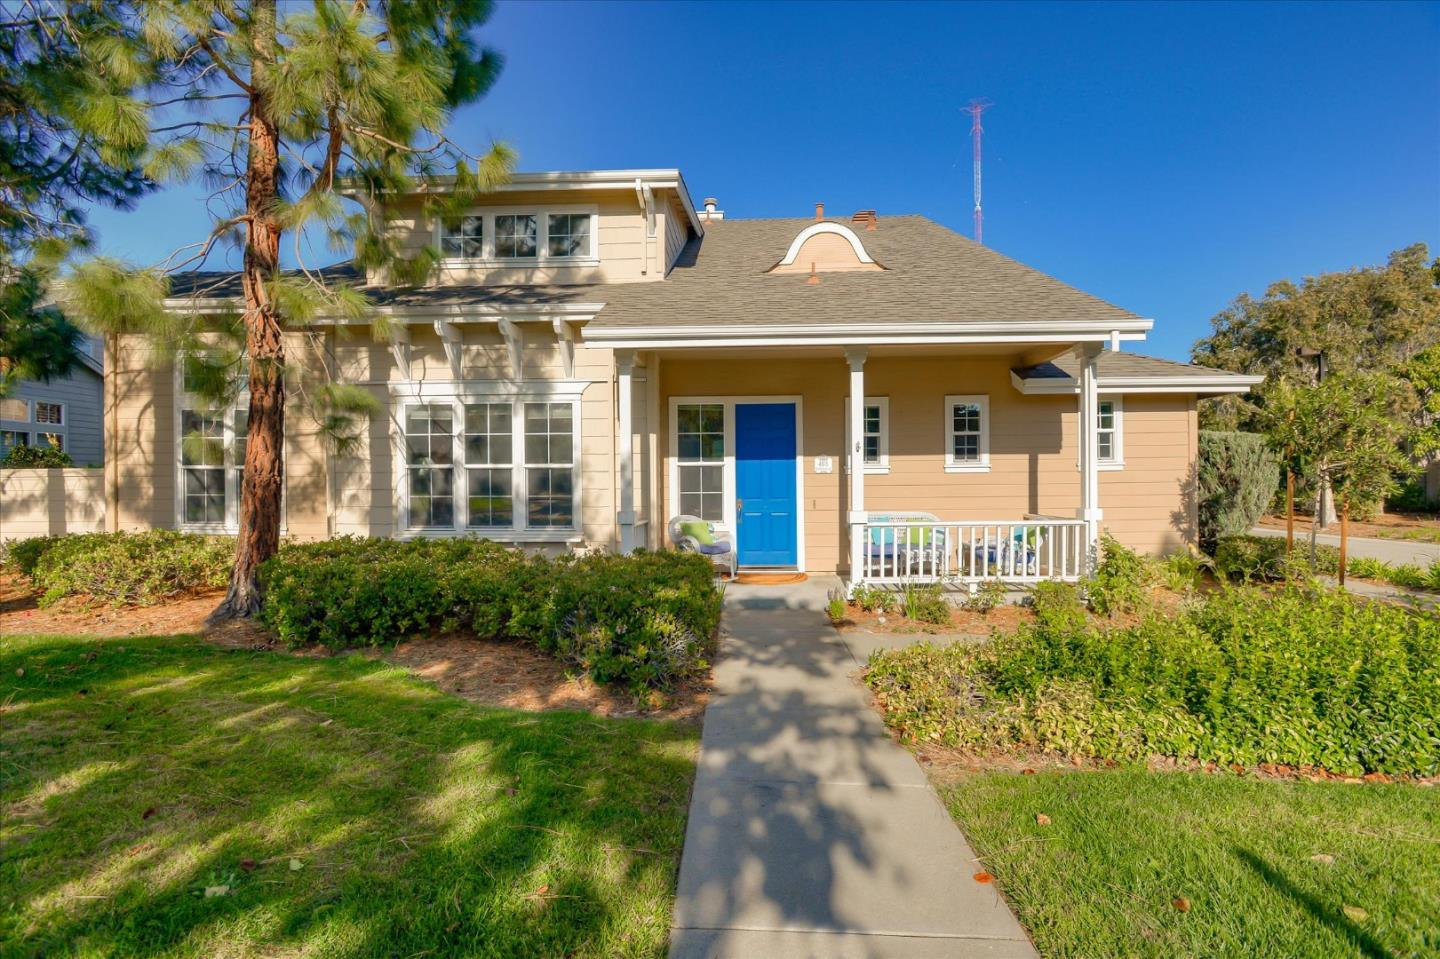 Sought-after Seabrook plan in Gossamer Cove, w/4 bdrms & 3 full baths painted w/sunshine & snuggled in a choice setting. You'll love the welcoming front porch, 2 gar attached garage w/car length driveway all on a sizeable corner lot: 6,091 sf.-one of the largest in the community. You'll appreciate a full bedroom & a full bathroom on the first floor. This home was a former builder model & features special touches like custom window coverings & valances, living room w/gracious formality, & dining room w/high ceilings. A separate family room features a built-in media center, & separate work desk. Gourmet kitchen offers a slab granite counter & full backsplash,  upgraded cabinets, Broan exhaust, 5-burner cooktop, tile floors, master chef island & more.  Double door entry to the spacious master bedroom w/separate retreat area, tub w/jets, stall shower and custom tile with inlets. Low maintenance rear yard ideal for entertaining. Don't miss the separate laundry room.